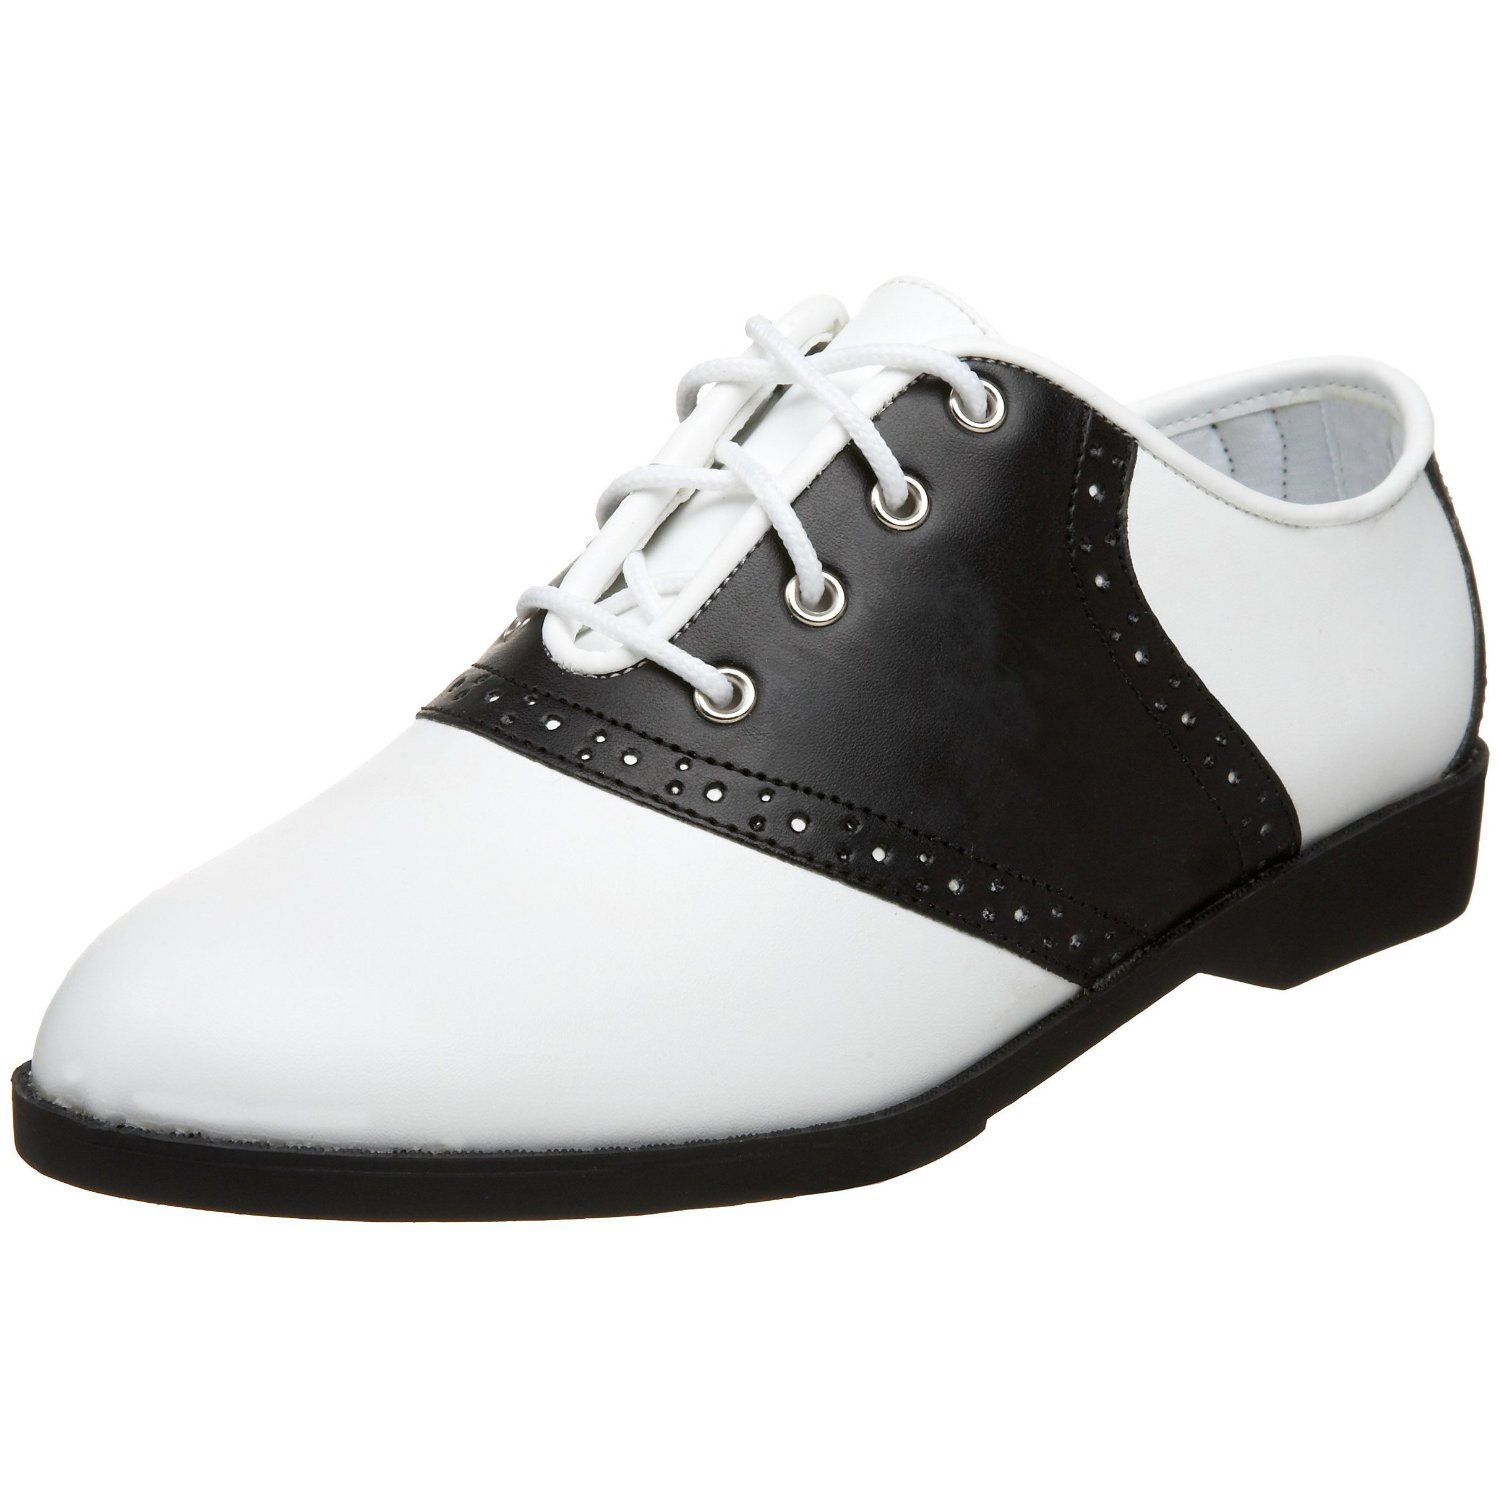 1940s Womens Footwear Ladies Saddle Shoes 1950s Costume Shoes 1950s Saddle Shoes White/Black $29.88 AT vintagedancer.com